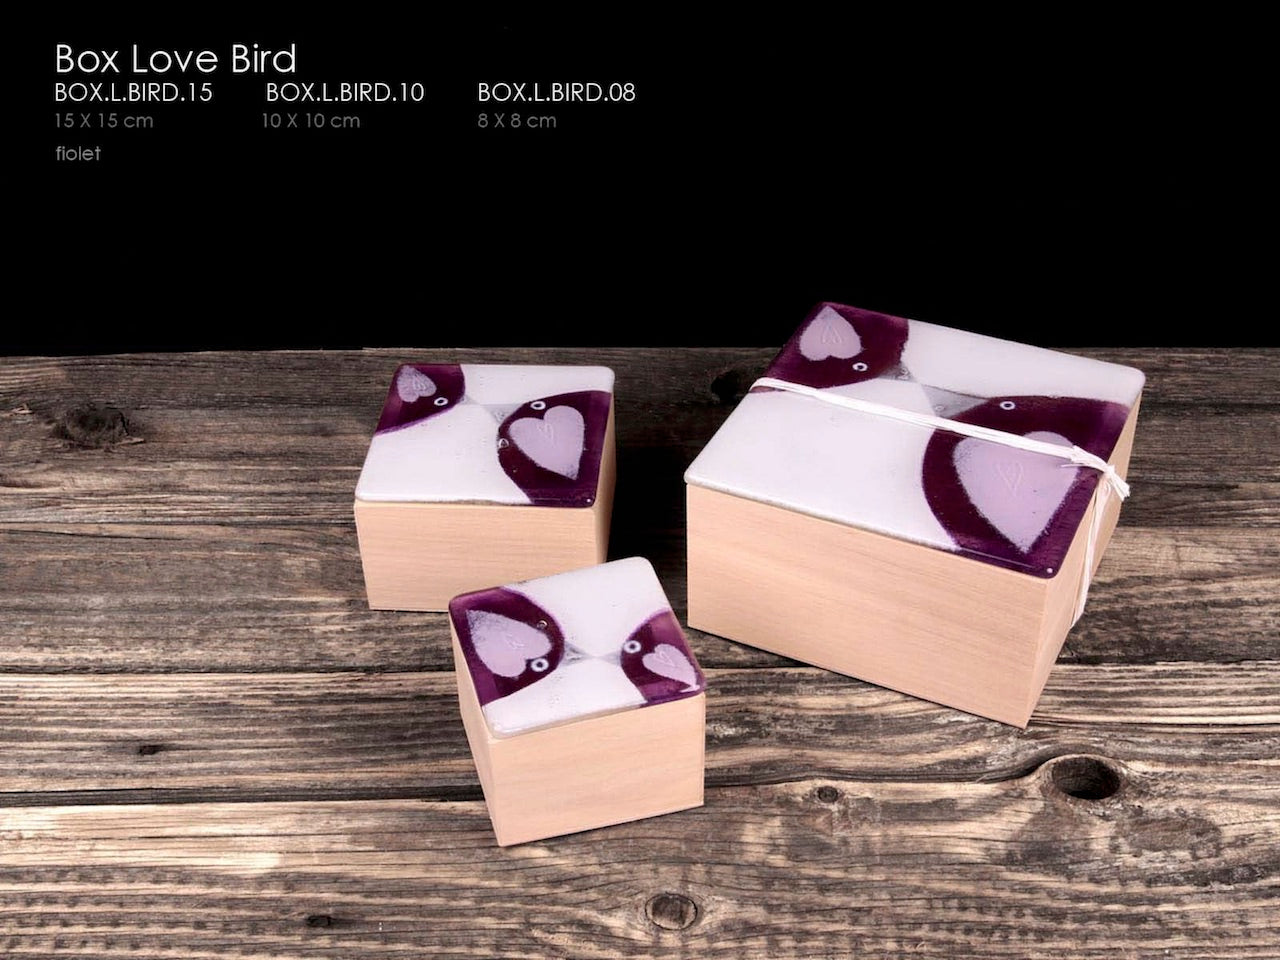 LOVE BIRD Jewellery box made from wood and glass. Fusion unique glass designed. Handcrafted beautiful perfect gift.